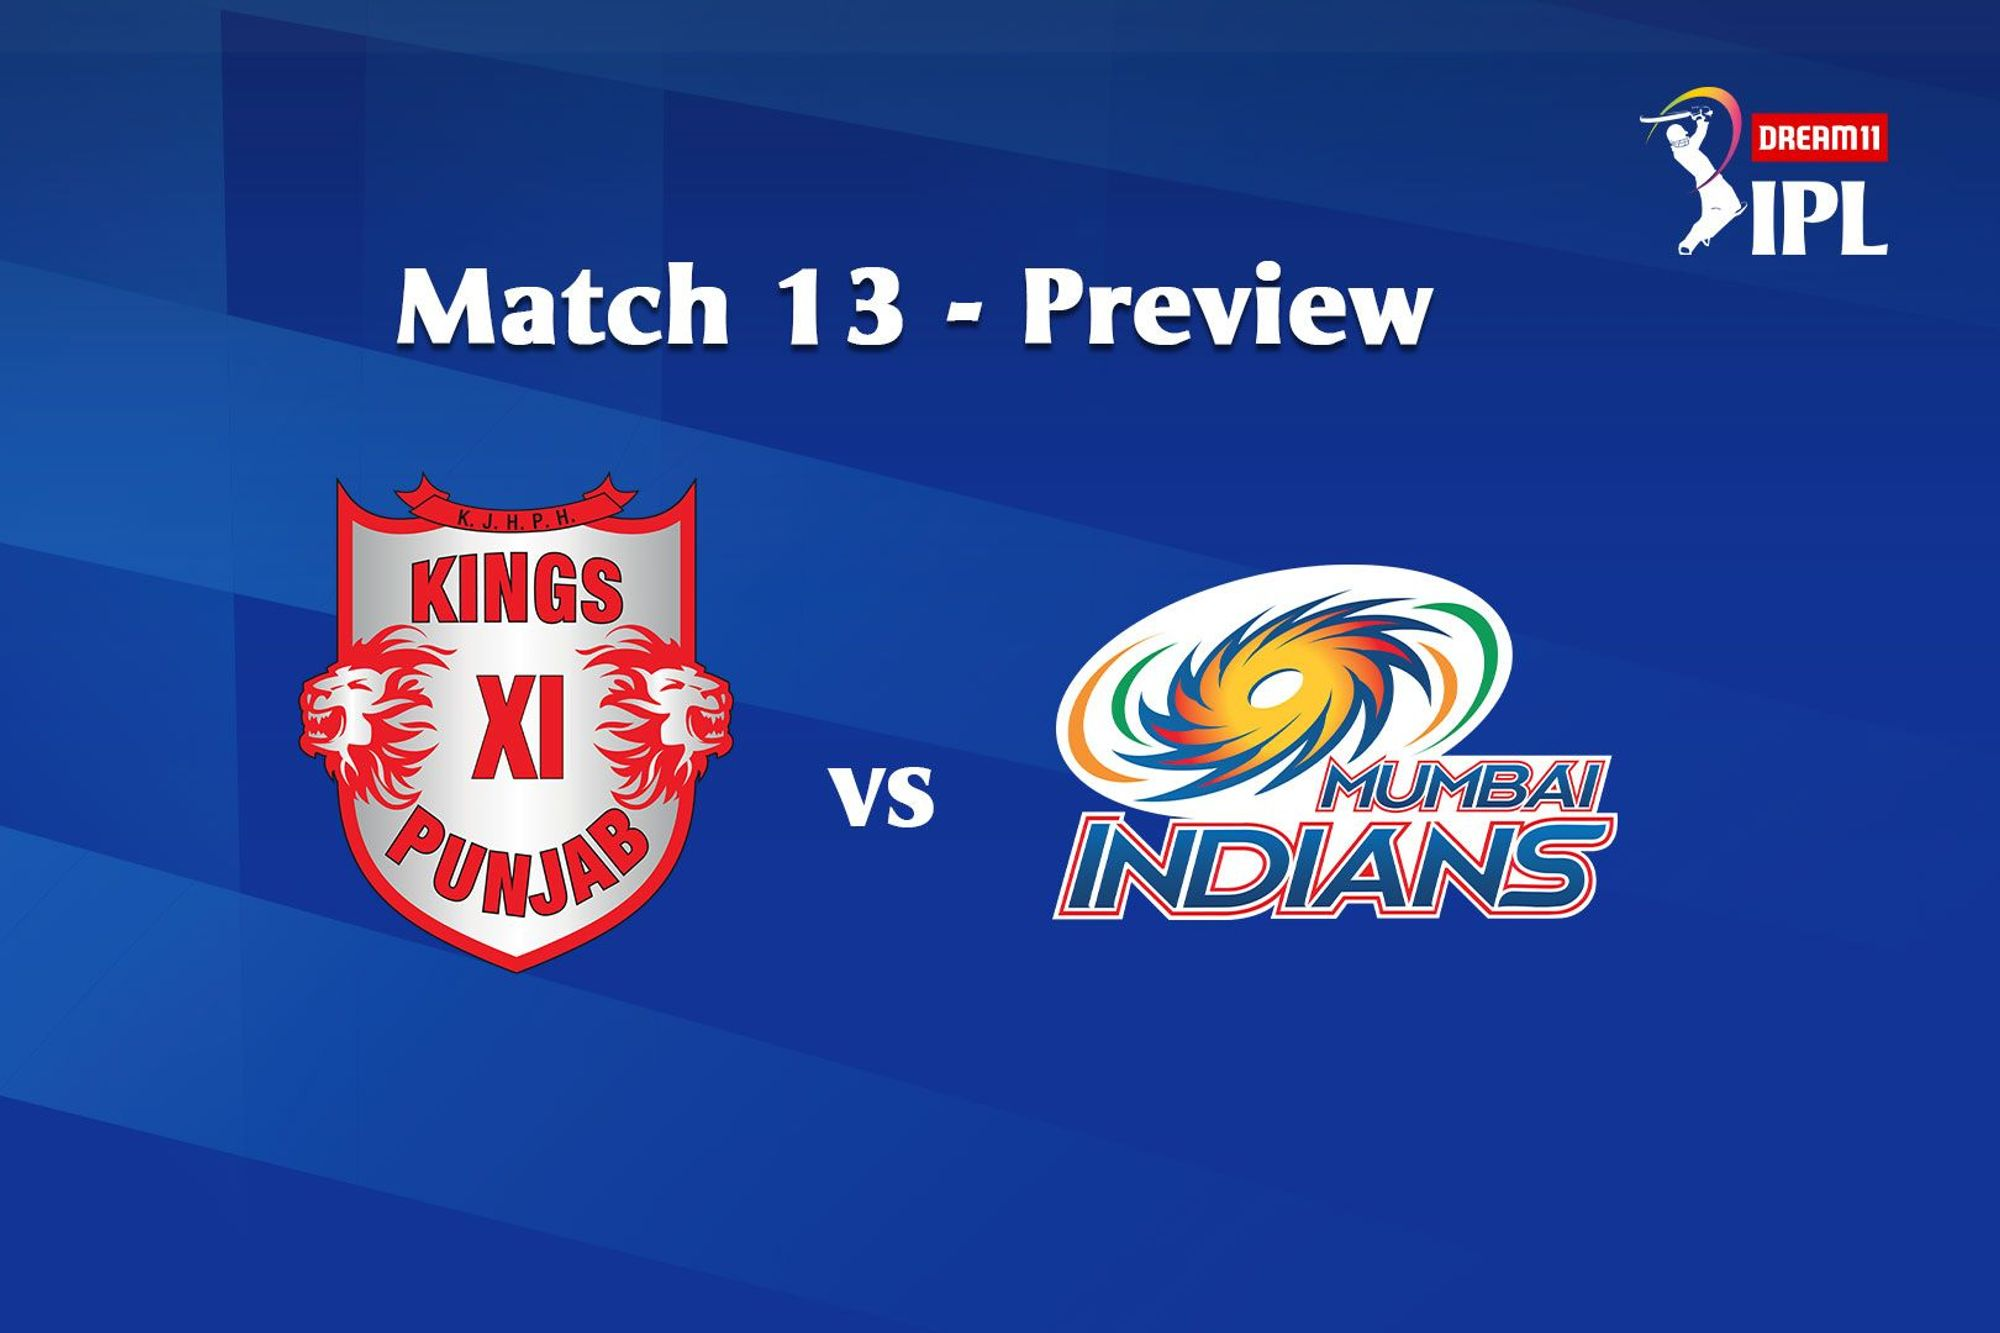 IPL 2020: KXIP Take On MI, Let Us See Their Head-To-Head Record And Key Players